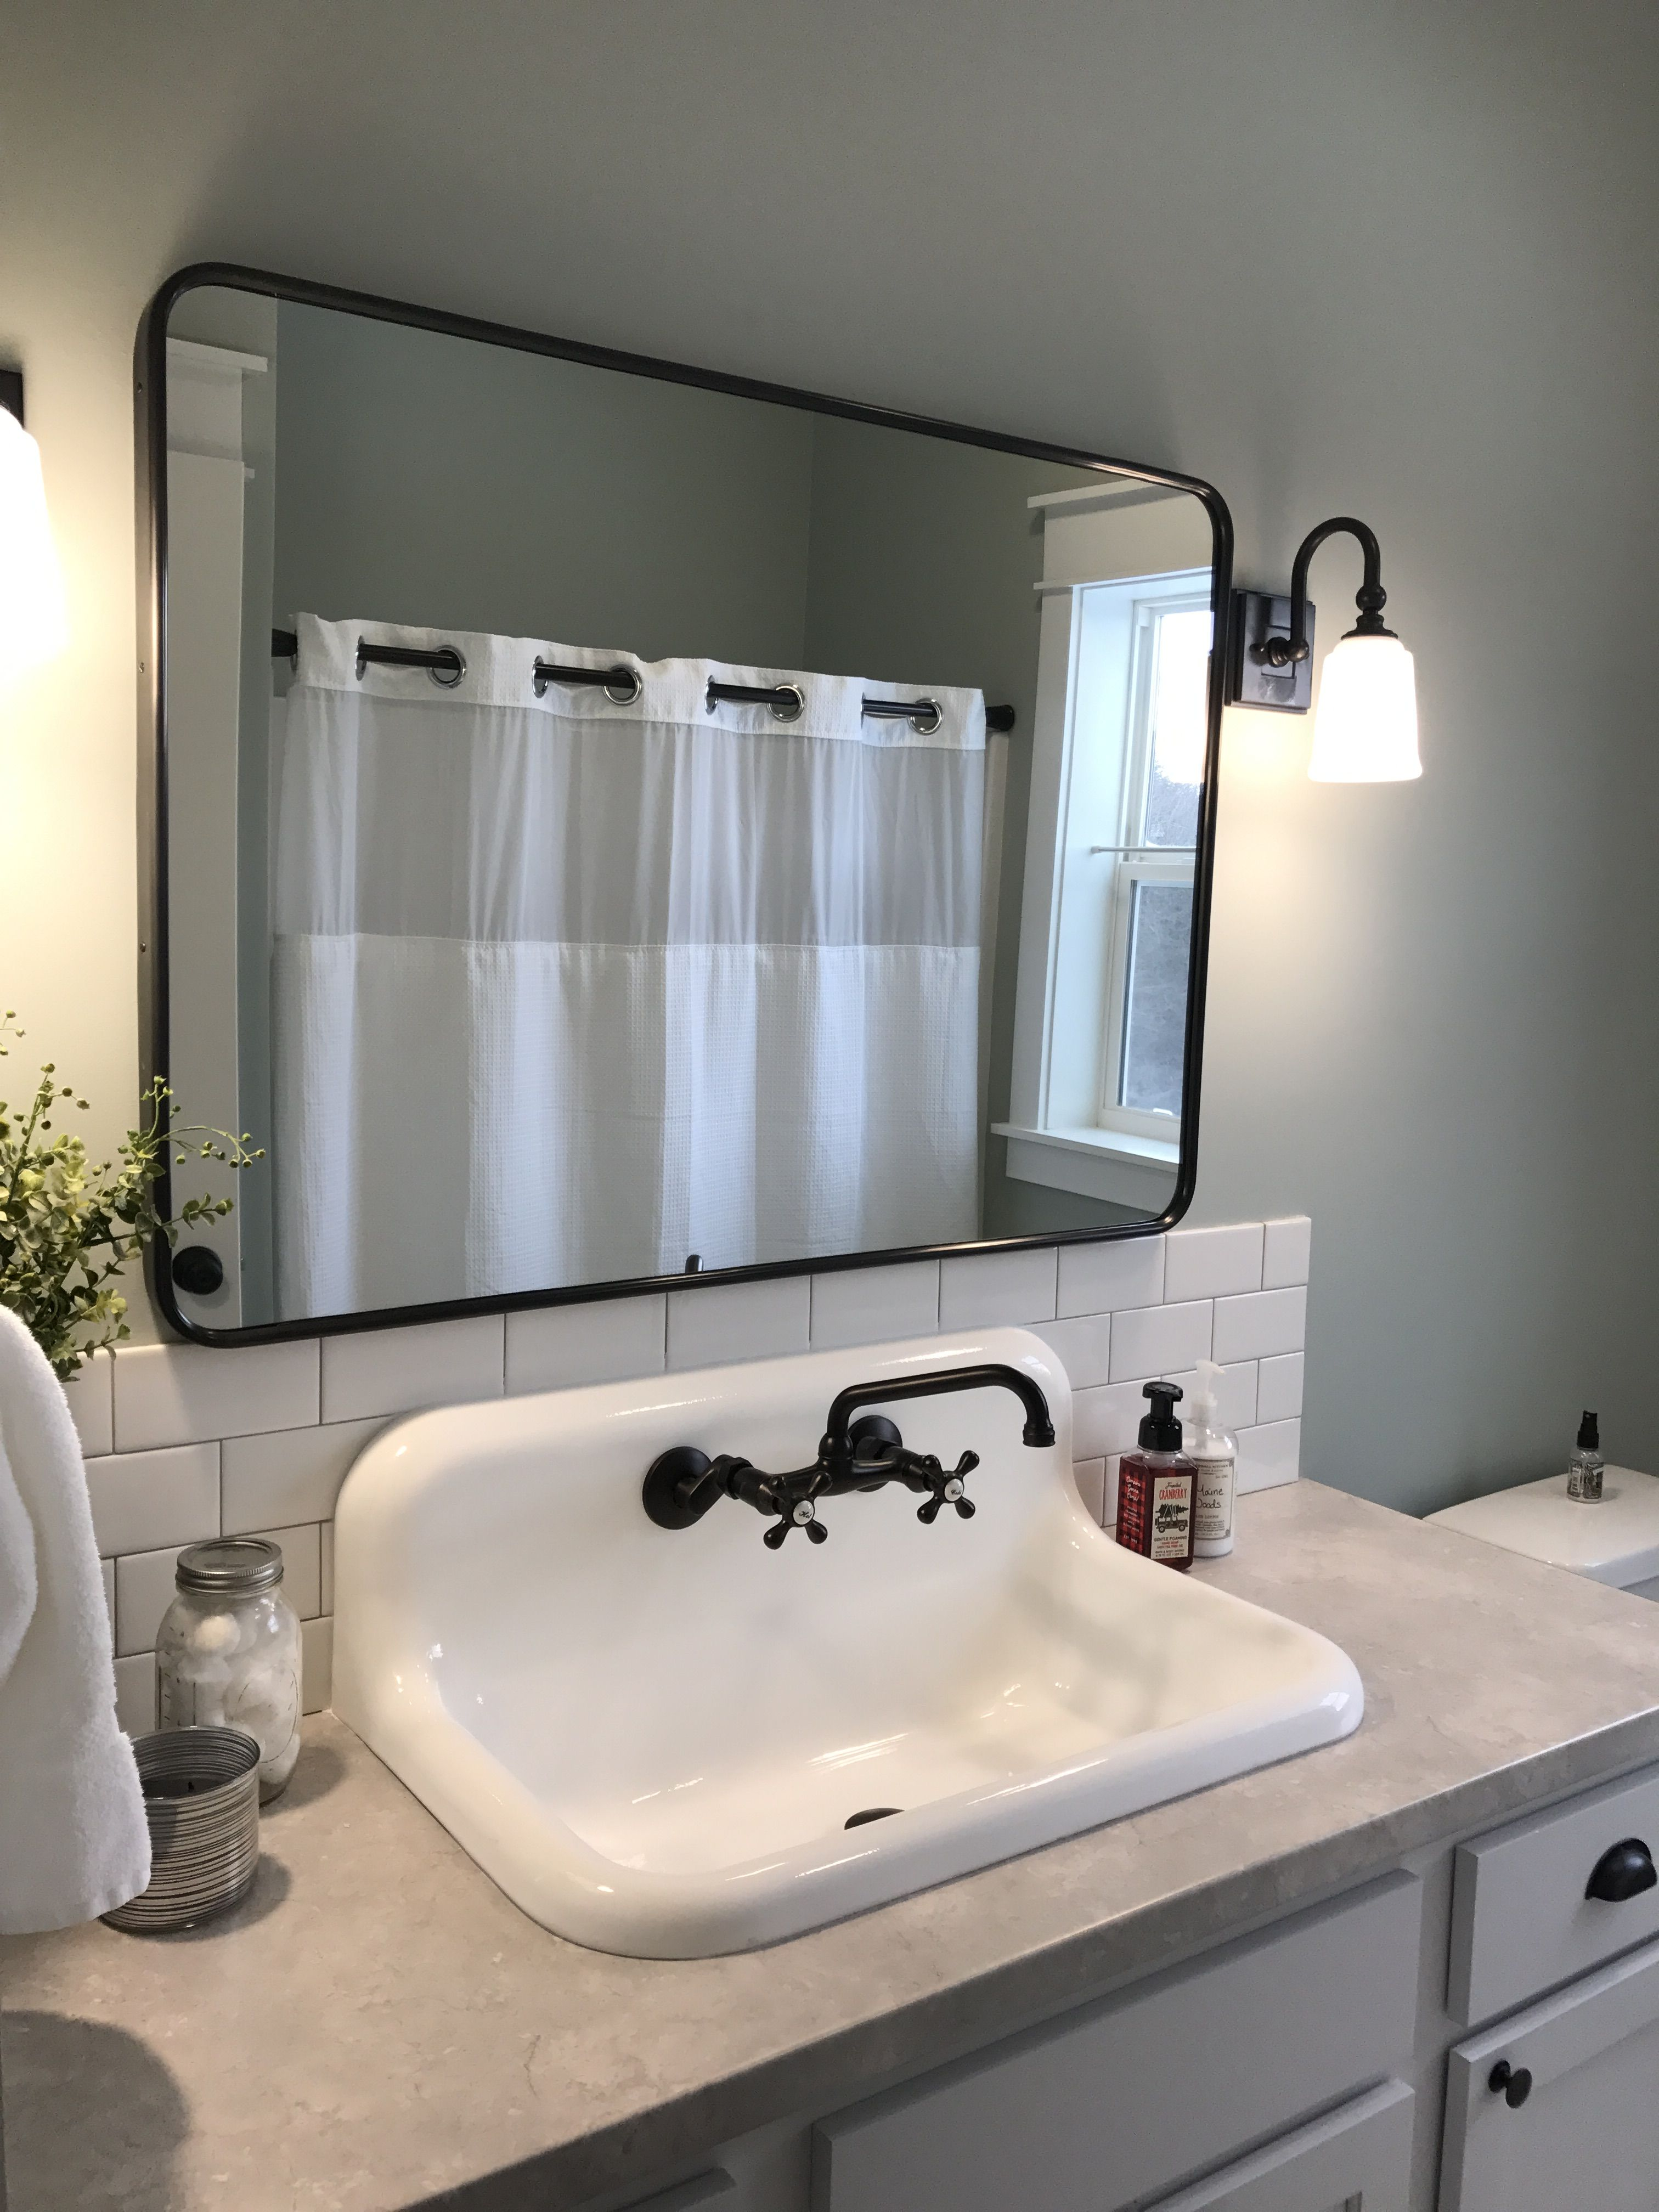 Farmhouse Bathroom With High Back Cast Iron Sink With Images Farmhouse Bathroom Sink Vintage Bathroom Sinks Bathroom Remodel Cost